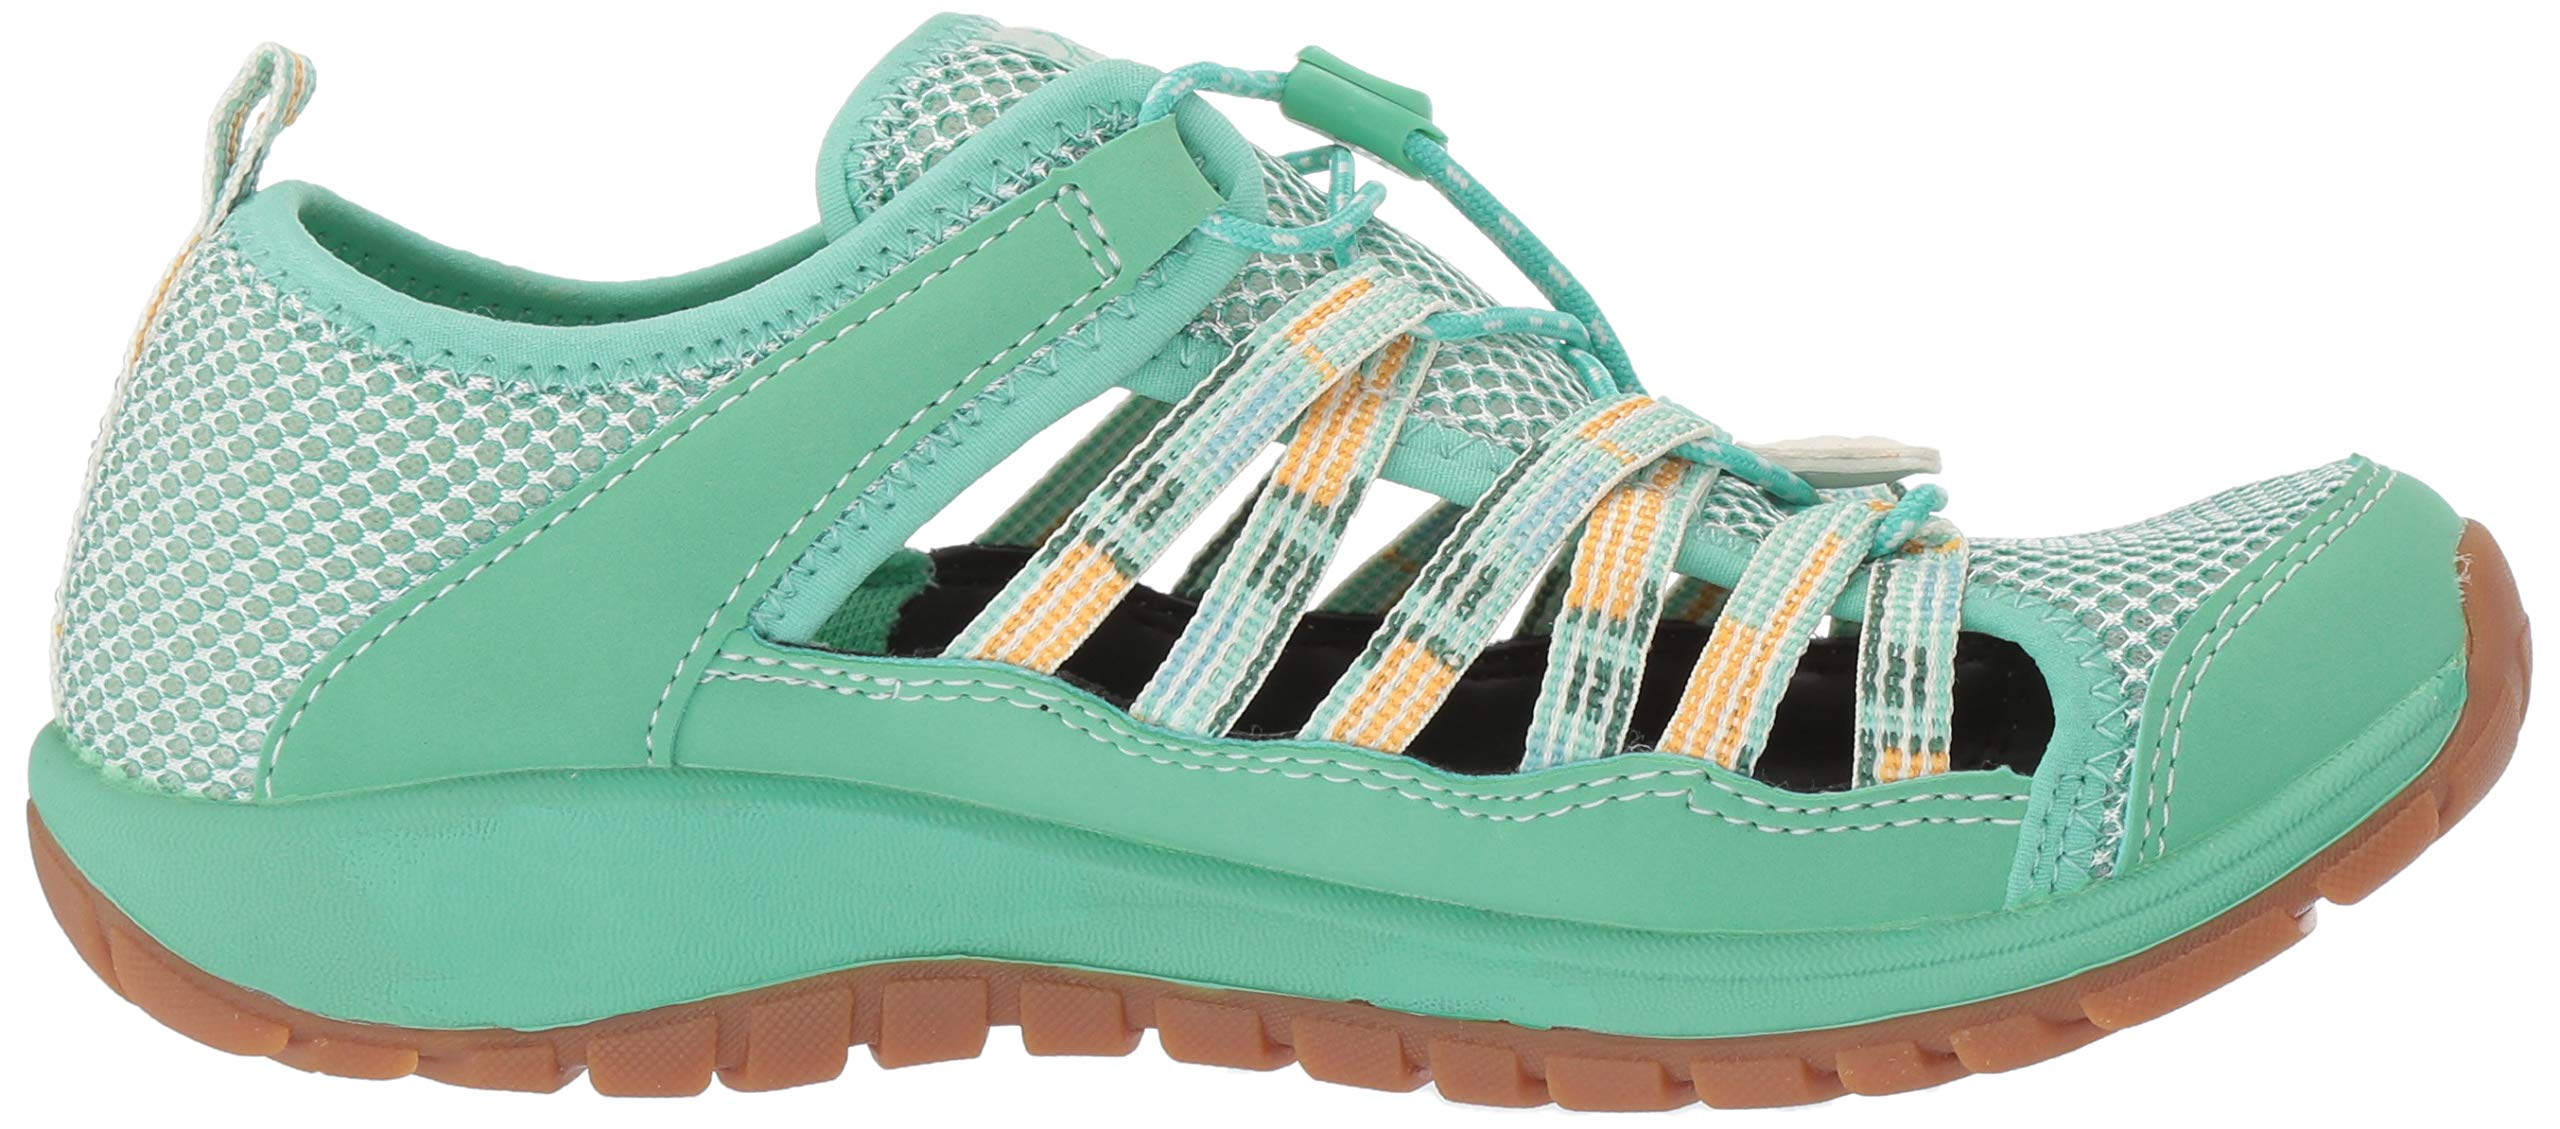 Chaco Unisex Outcross 2 Hiking Shoe teal 04.0 M US Big Kid by Chaco (Image #7)